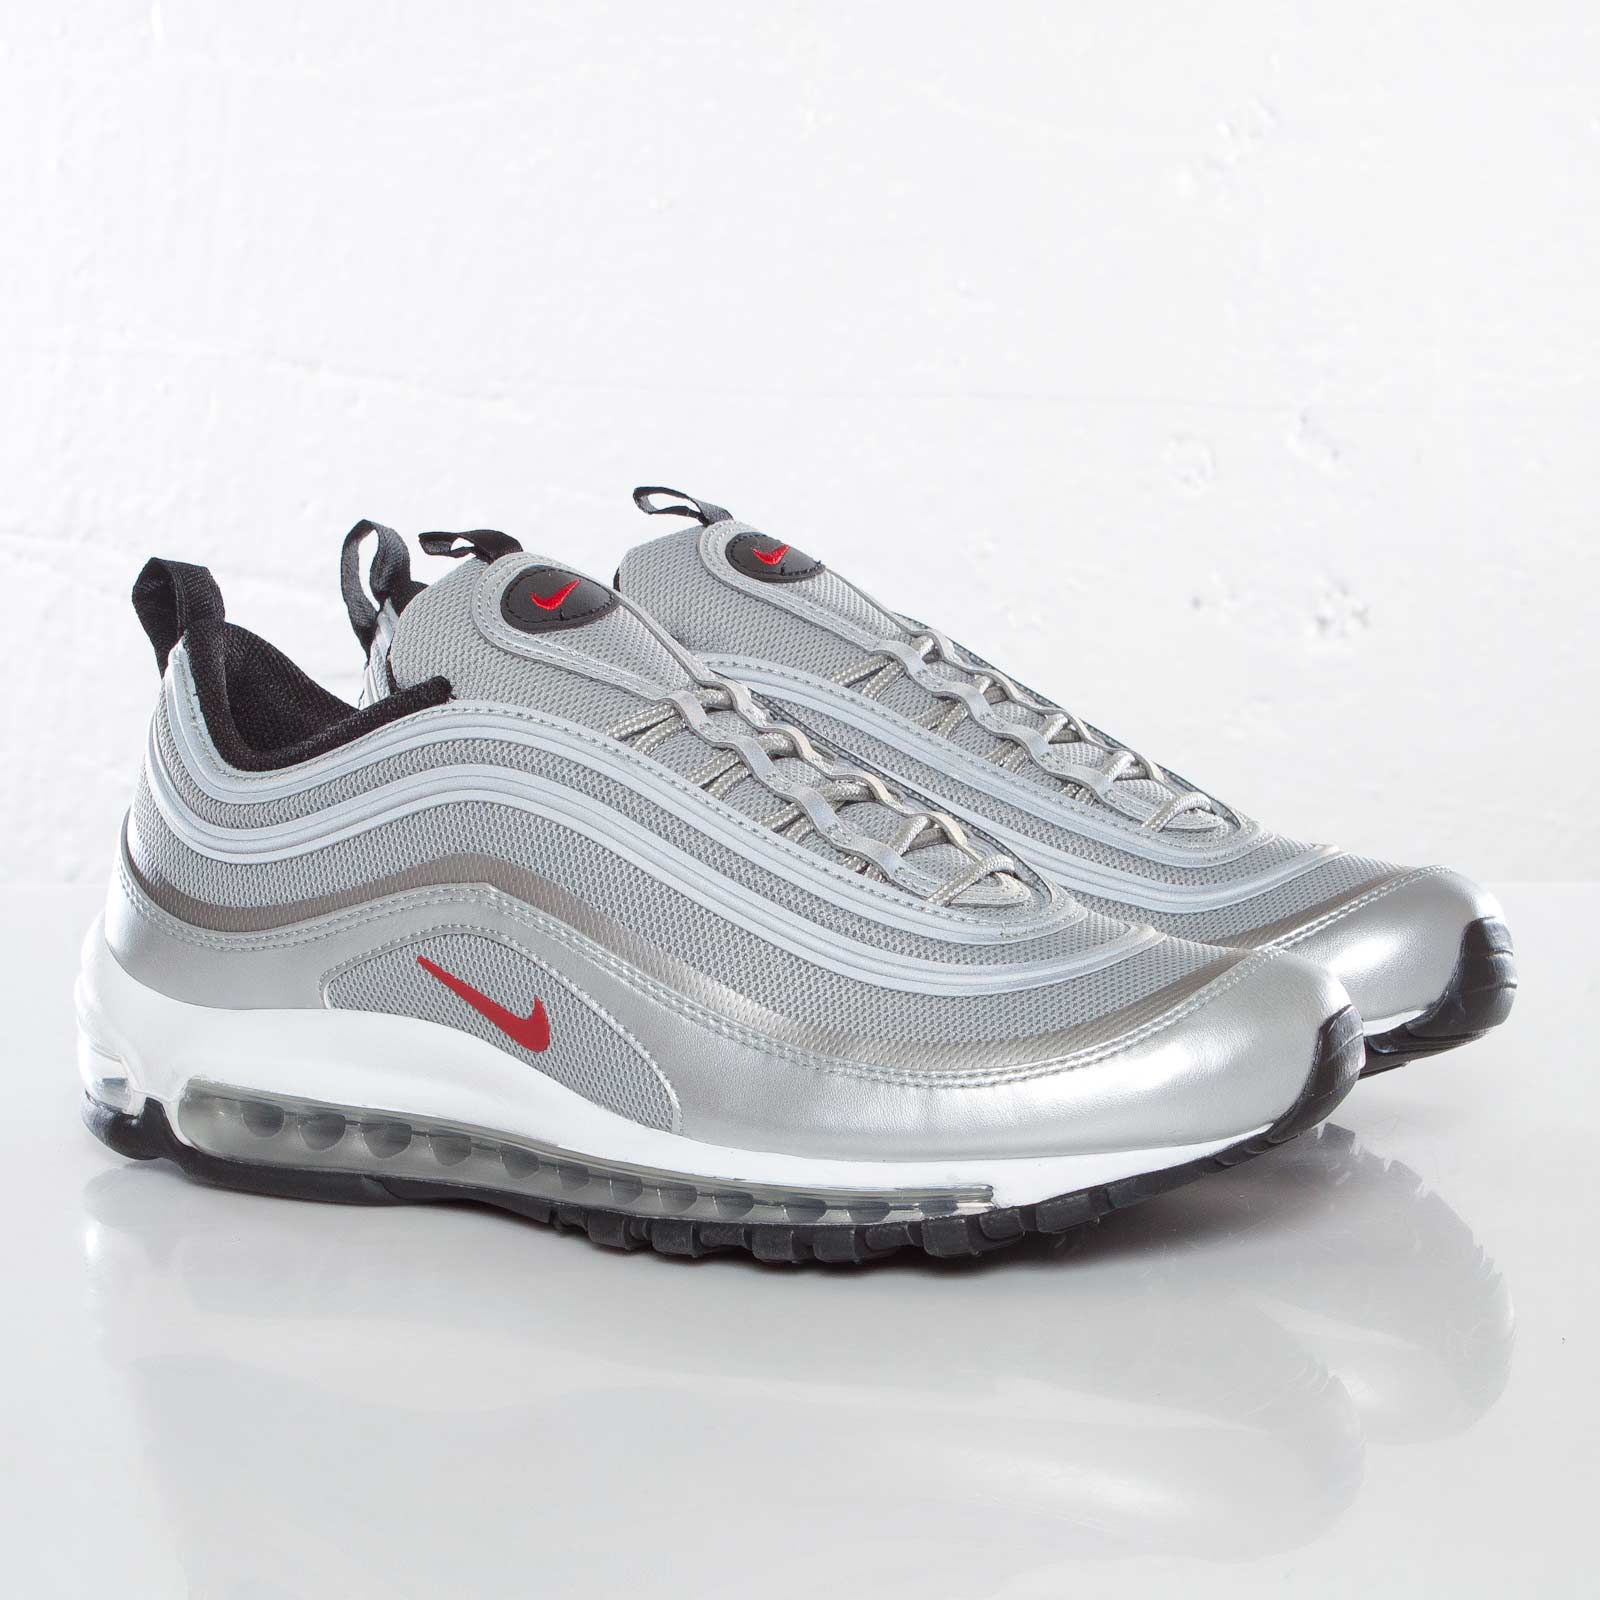 Nike White Air Max 97 'usa Tape' for men